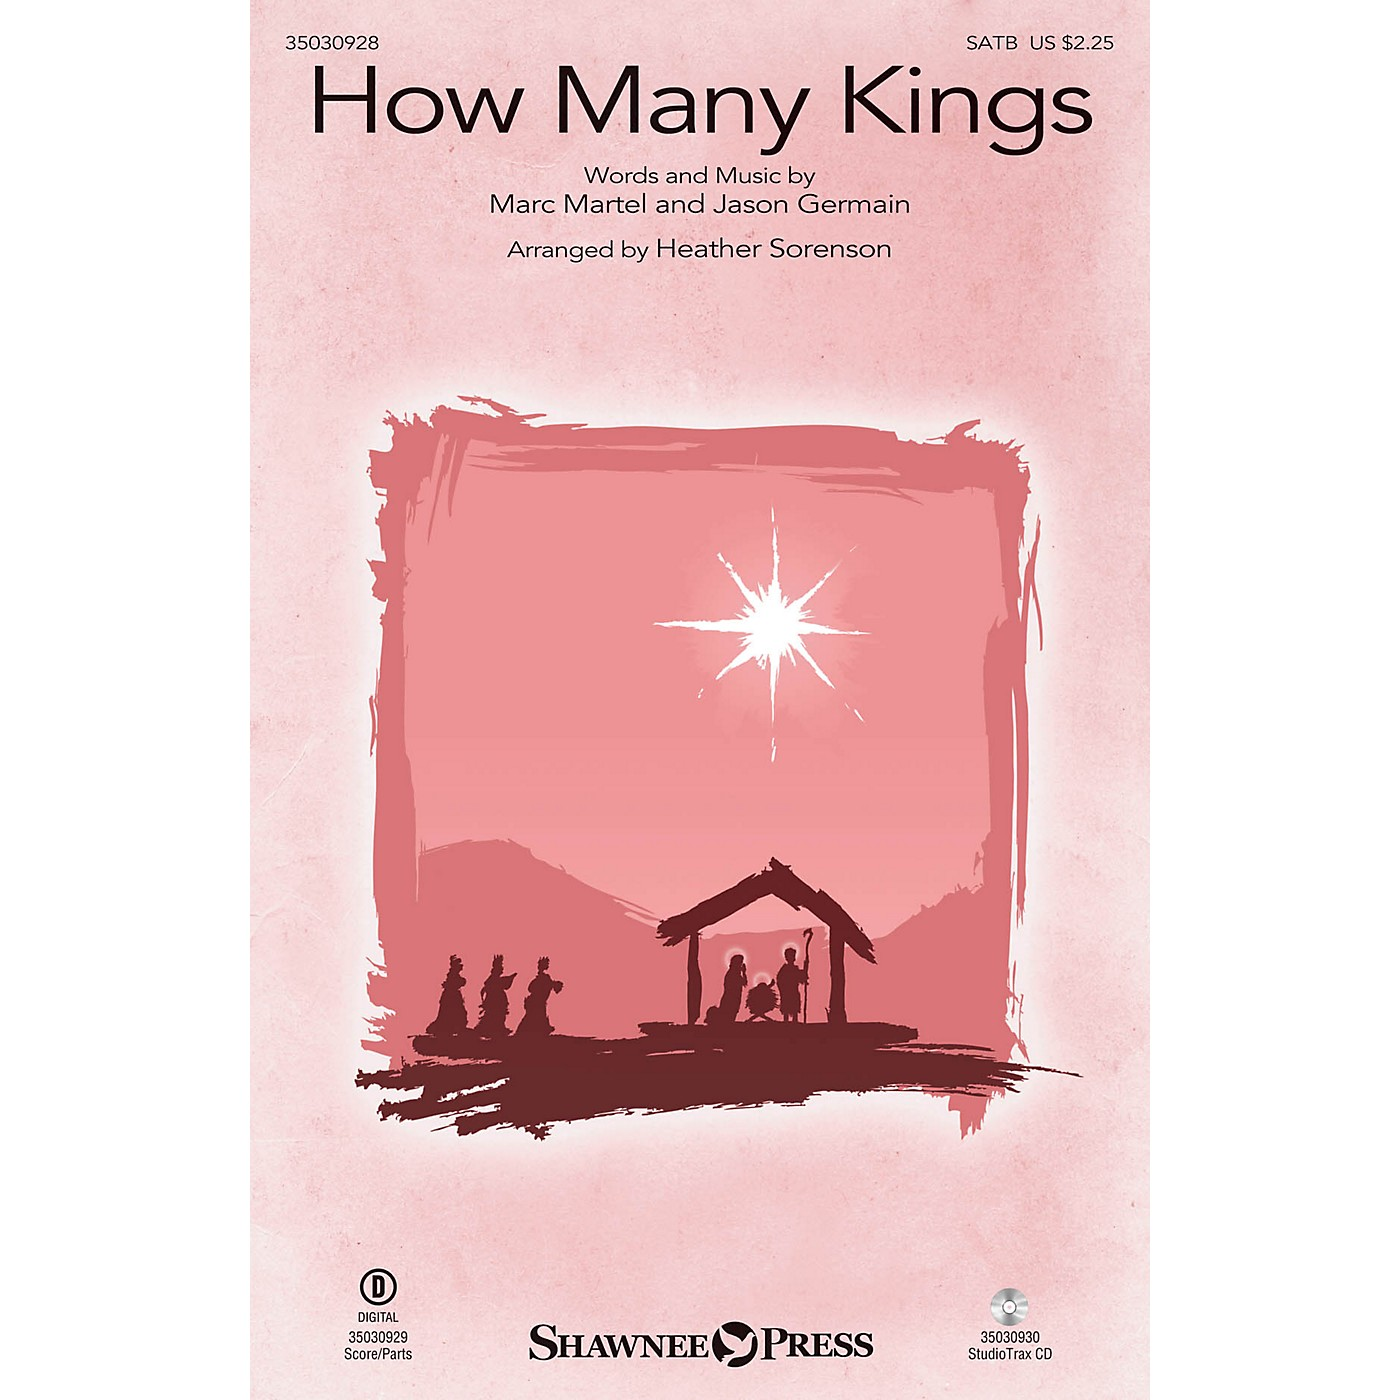 Shawnee Press How Many Kings Studiotrax CD by Down Here Arranged by Heather Sorenson thumbnail